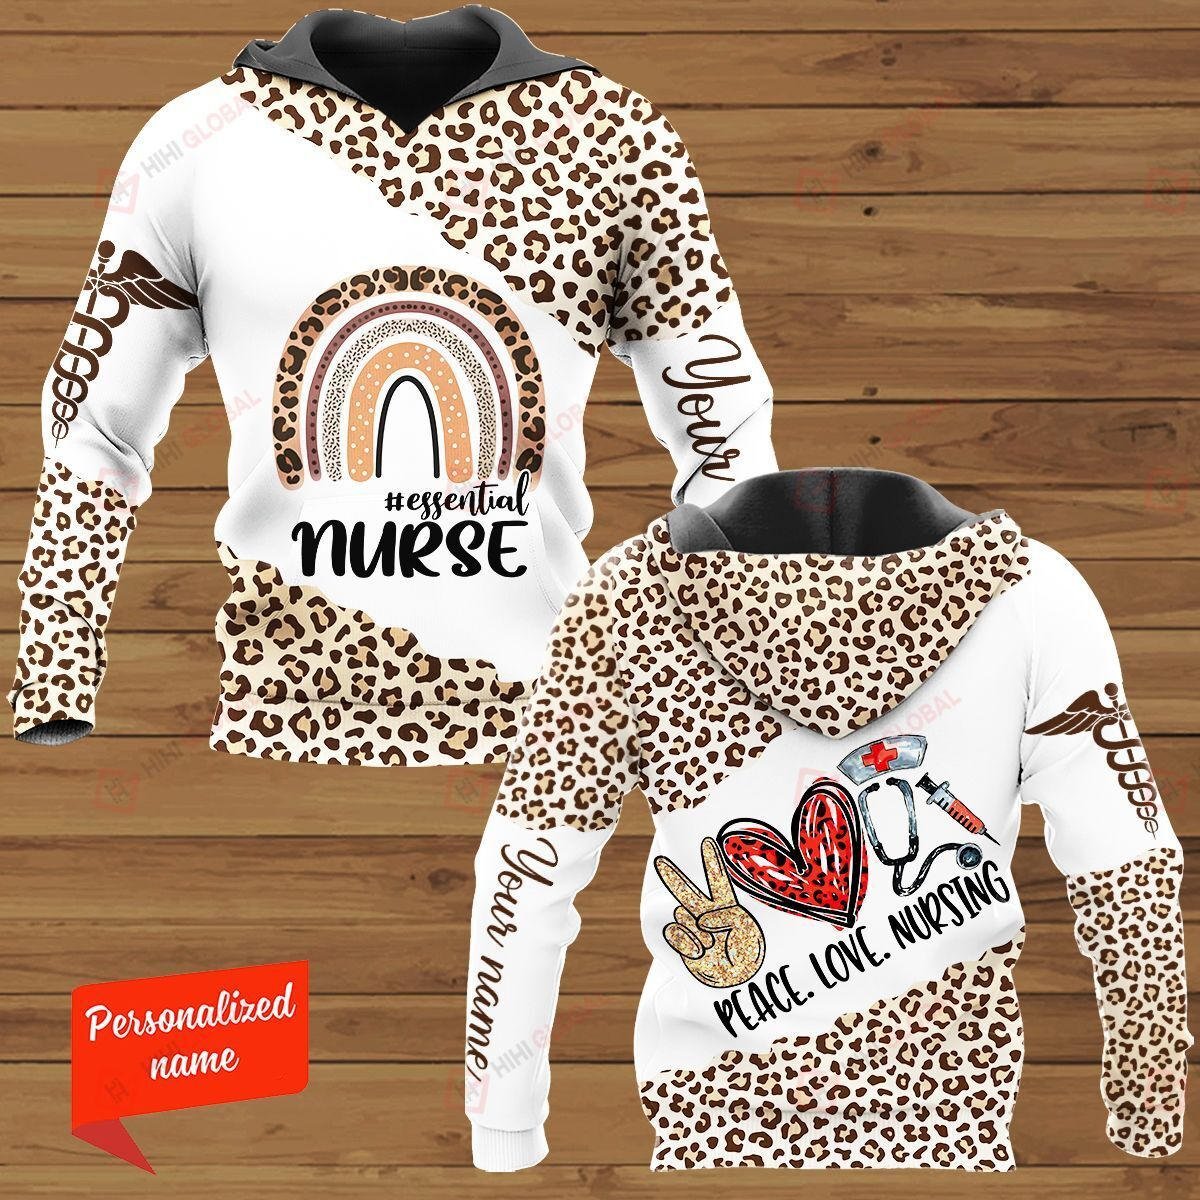 Peace Love Nursing #essential Nurse Personalized  ALL OVER PRINTED SHIRTS